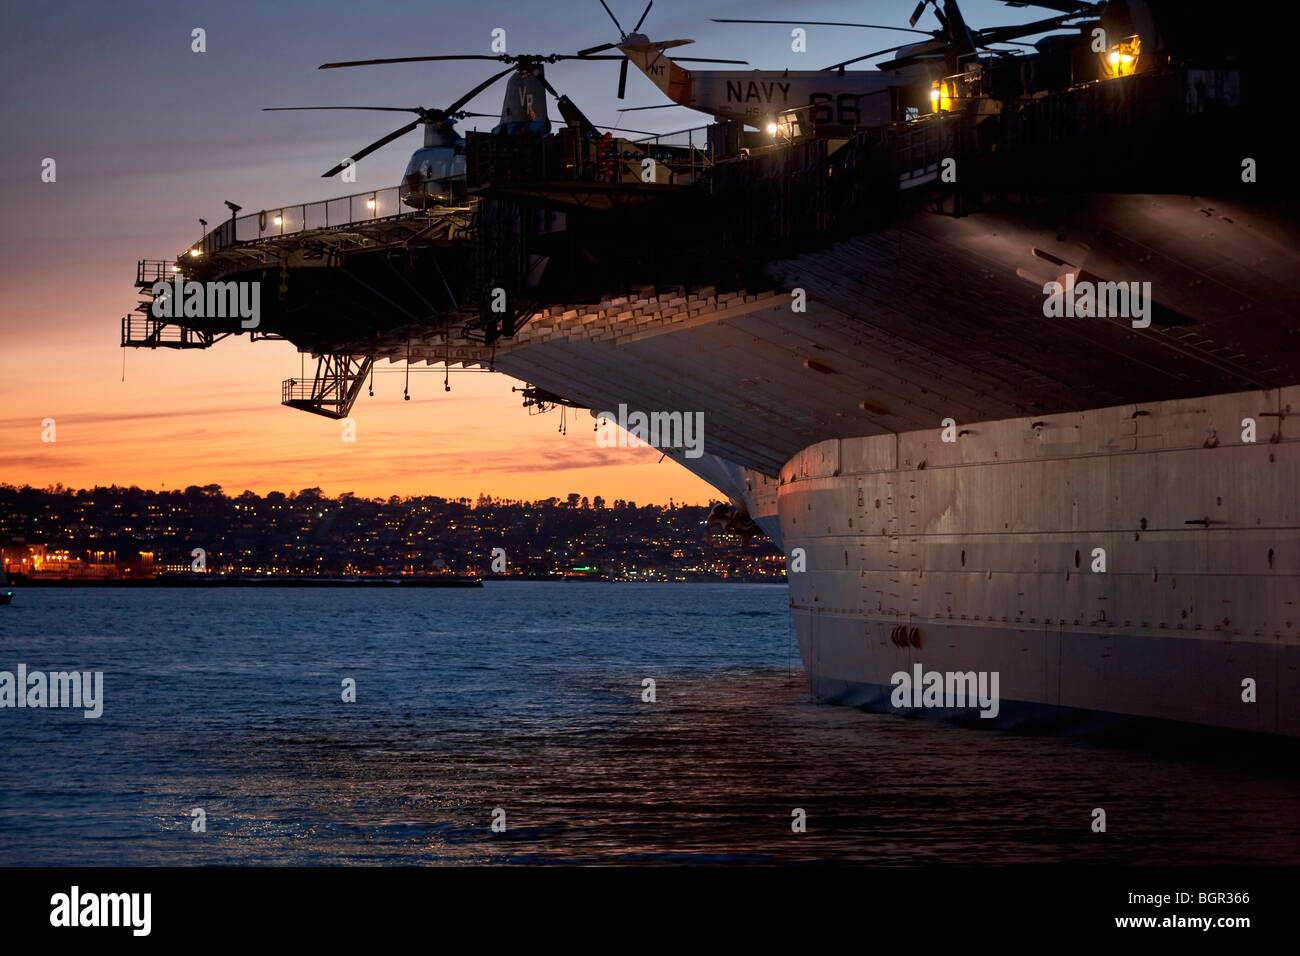 Aircraft carrier in San Diego harbor at sunrise, San Diego Bay, California, USA - Stock Image